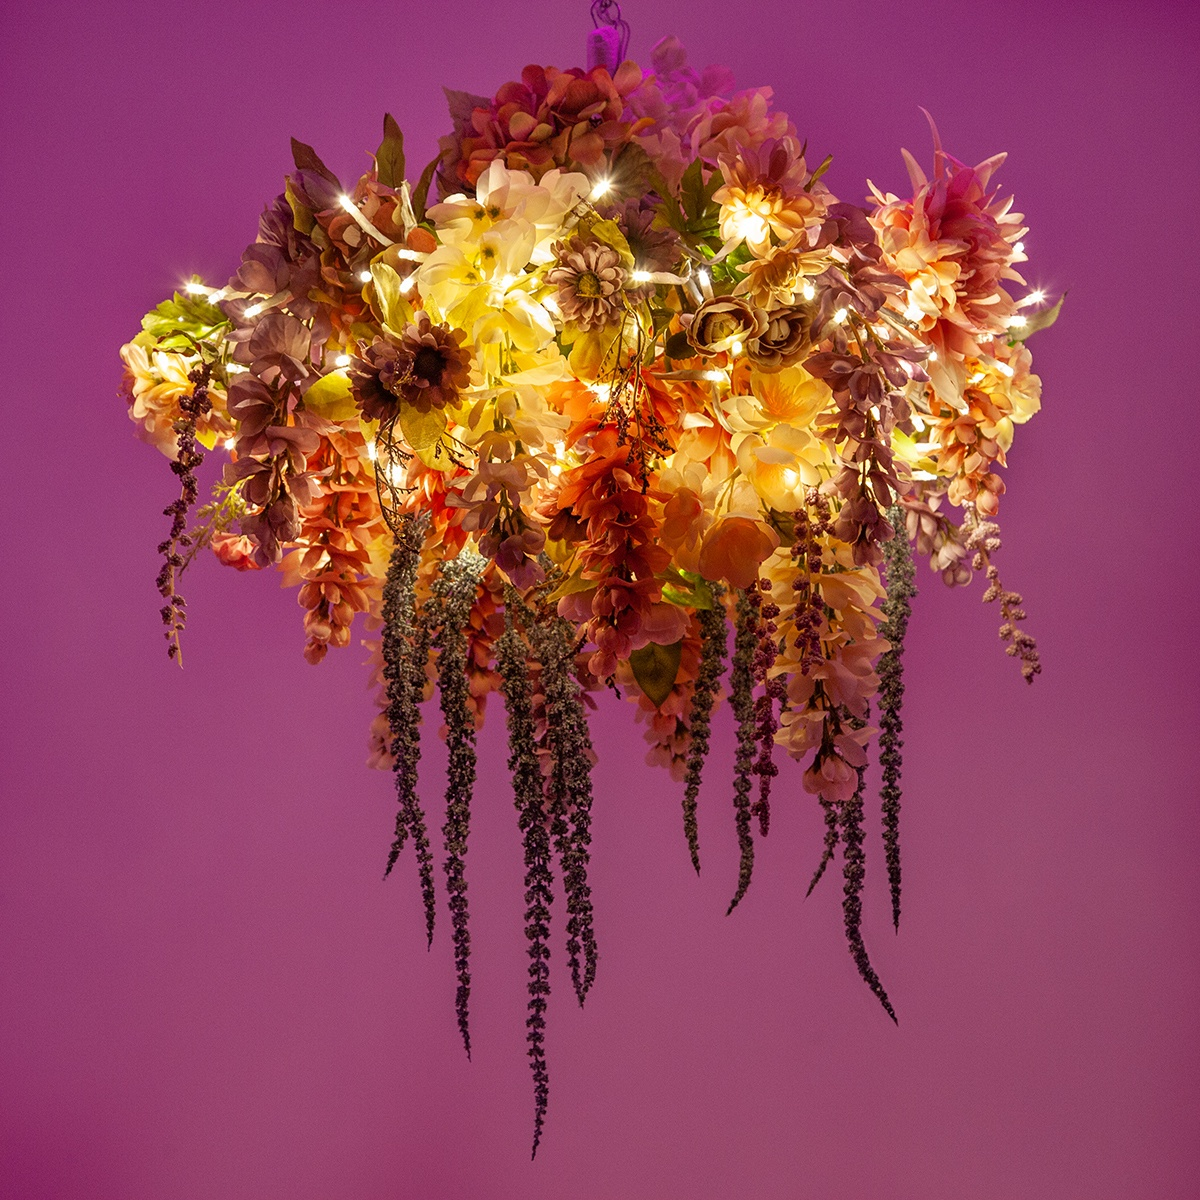 DIY Chandelier Faux Floral Arrangement Made with Starburst Lighted Branches